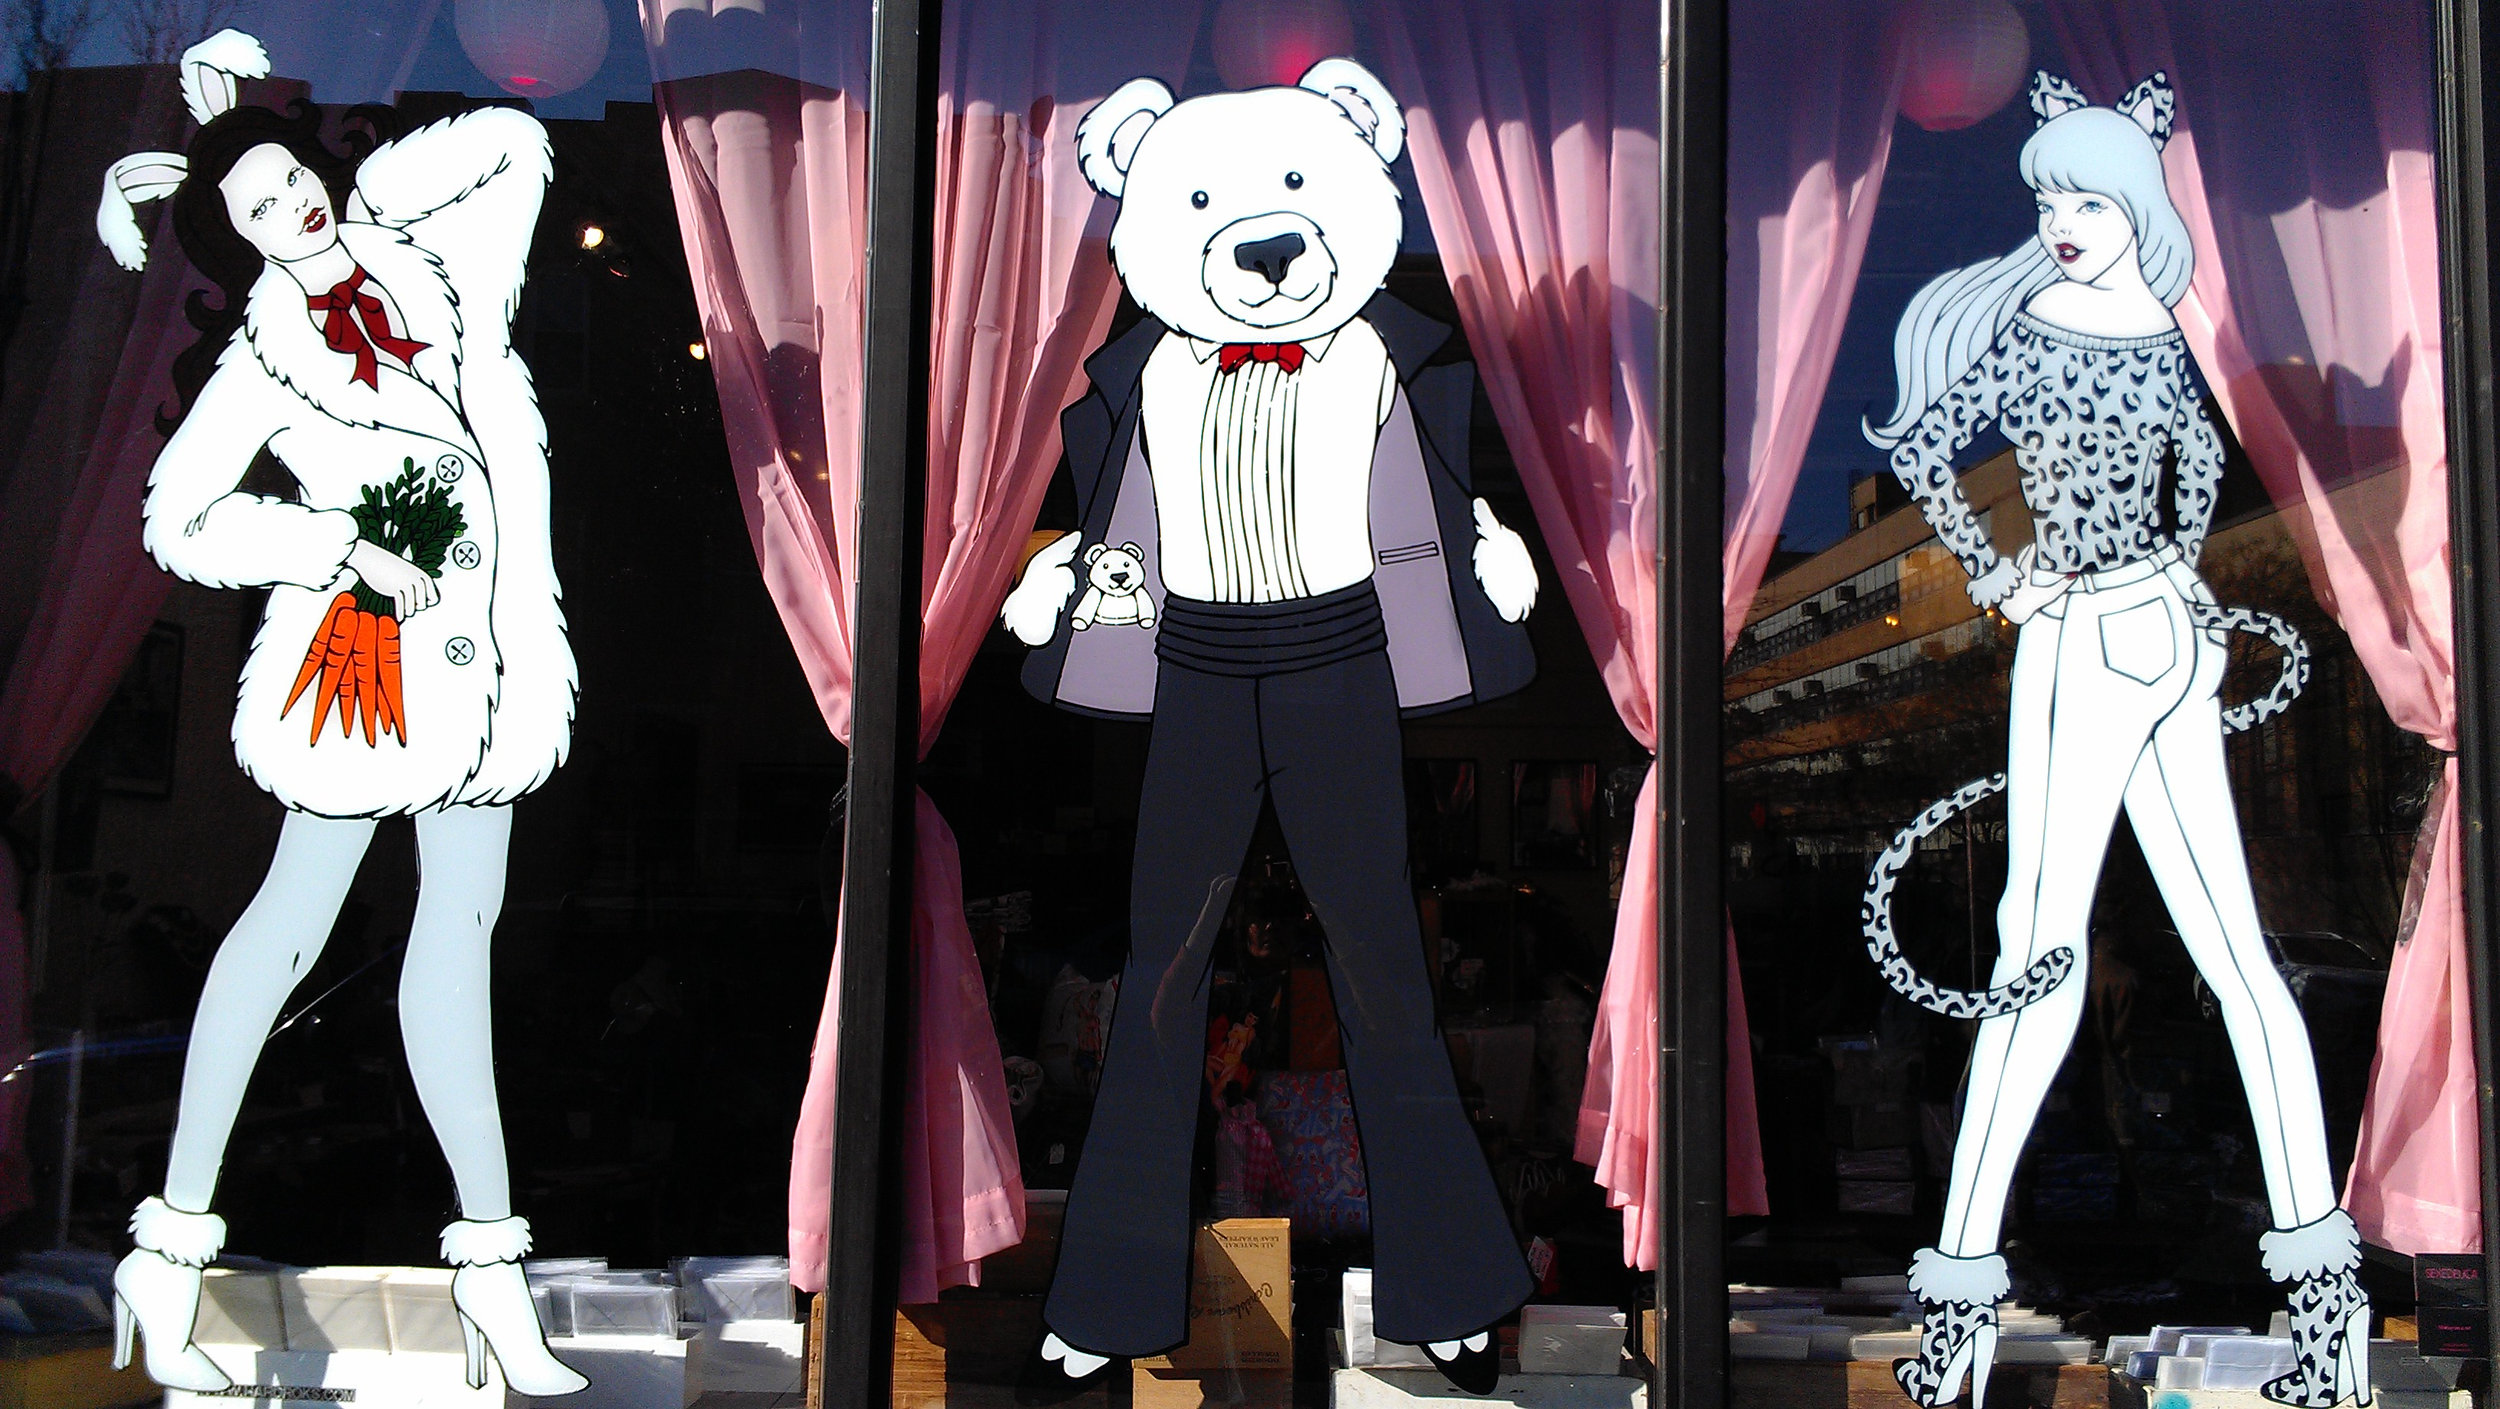 sexedelica window winter 2012 1.jpg